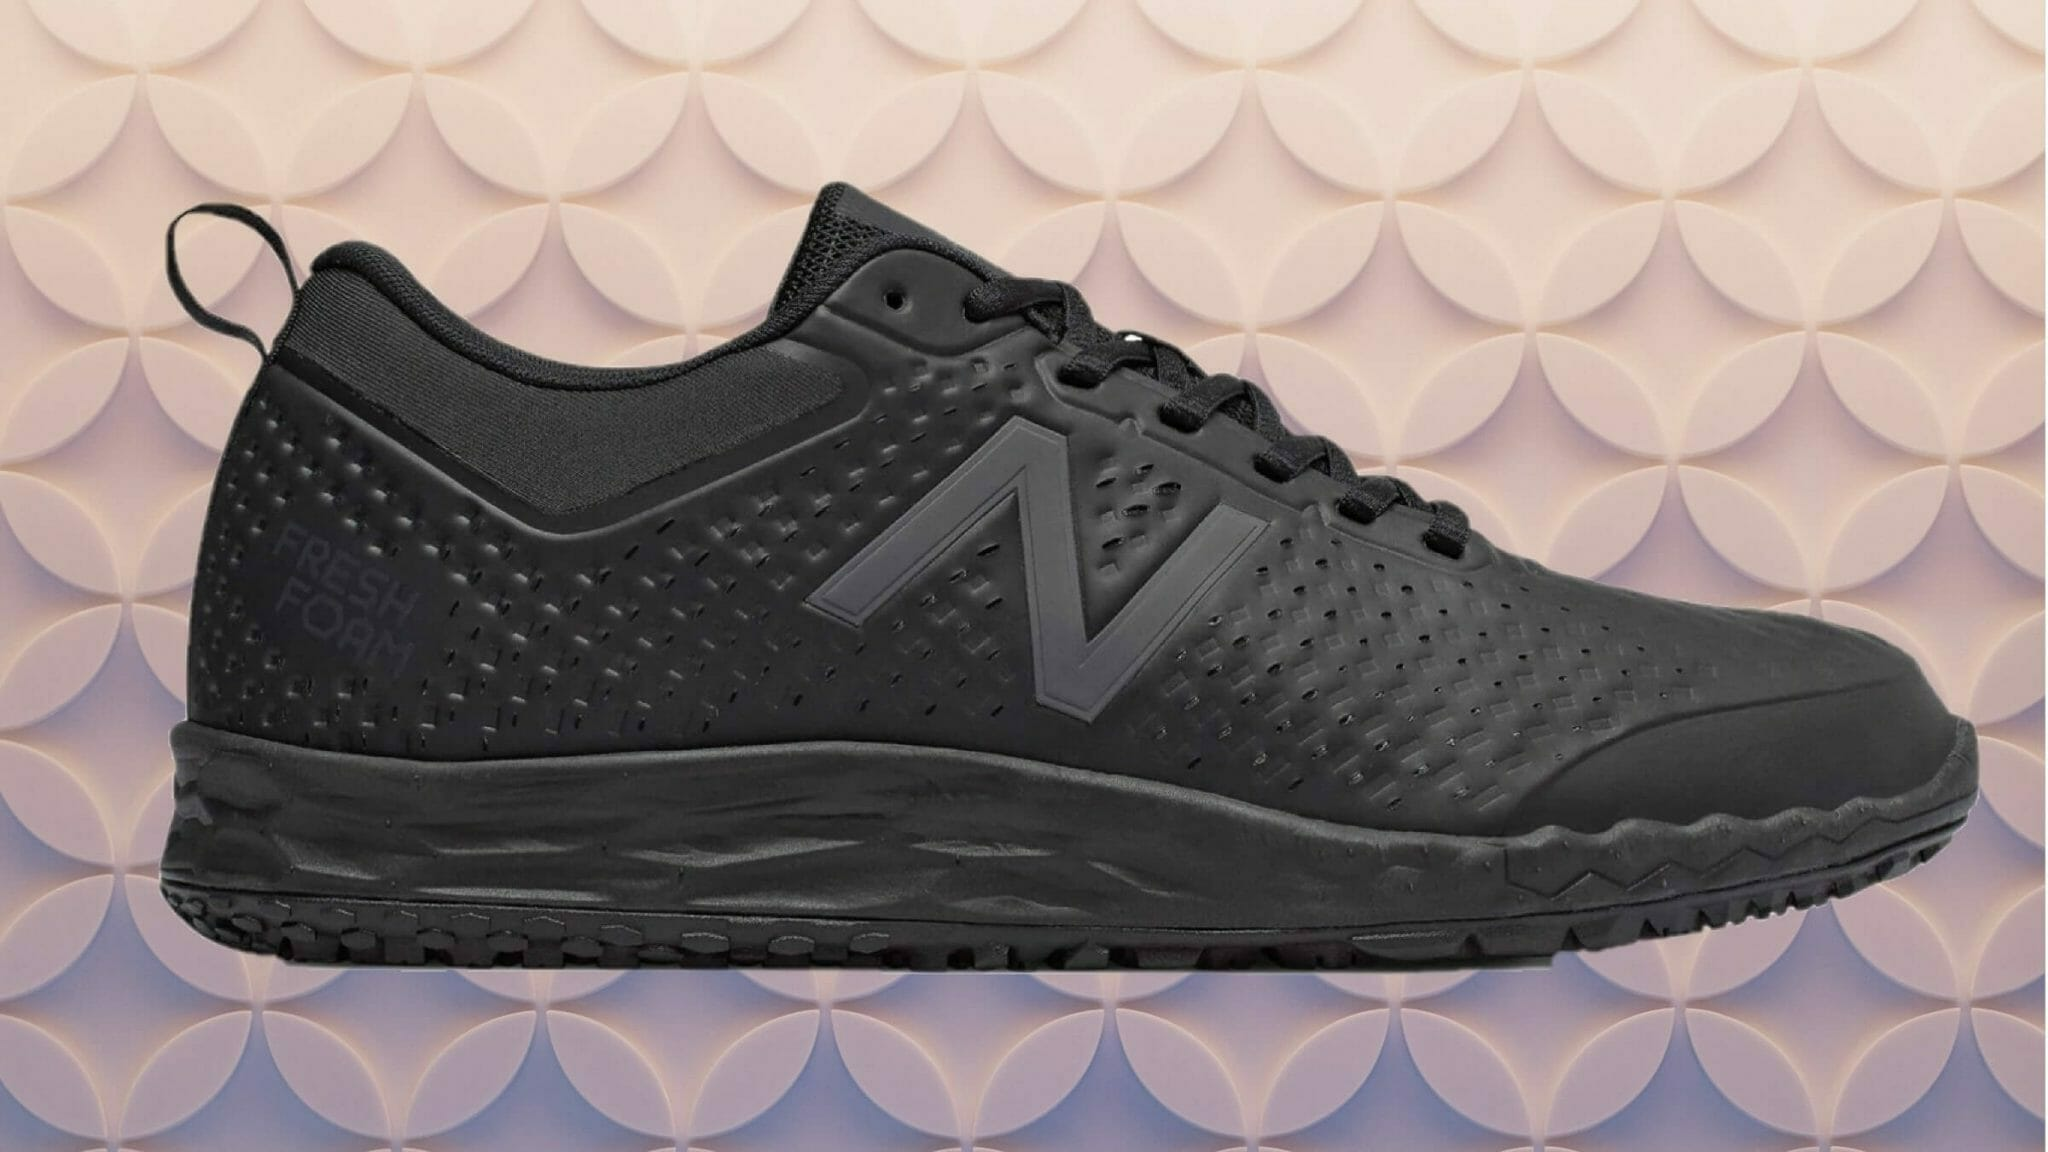 New Balance 806 slip resistant all black shoe for warehouse pickers walking on concrete